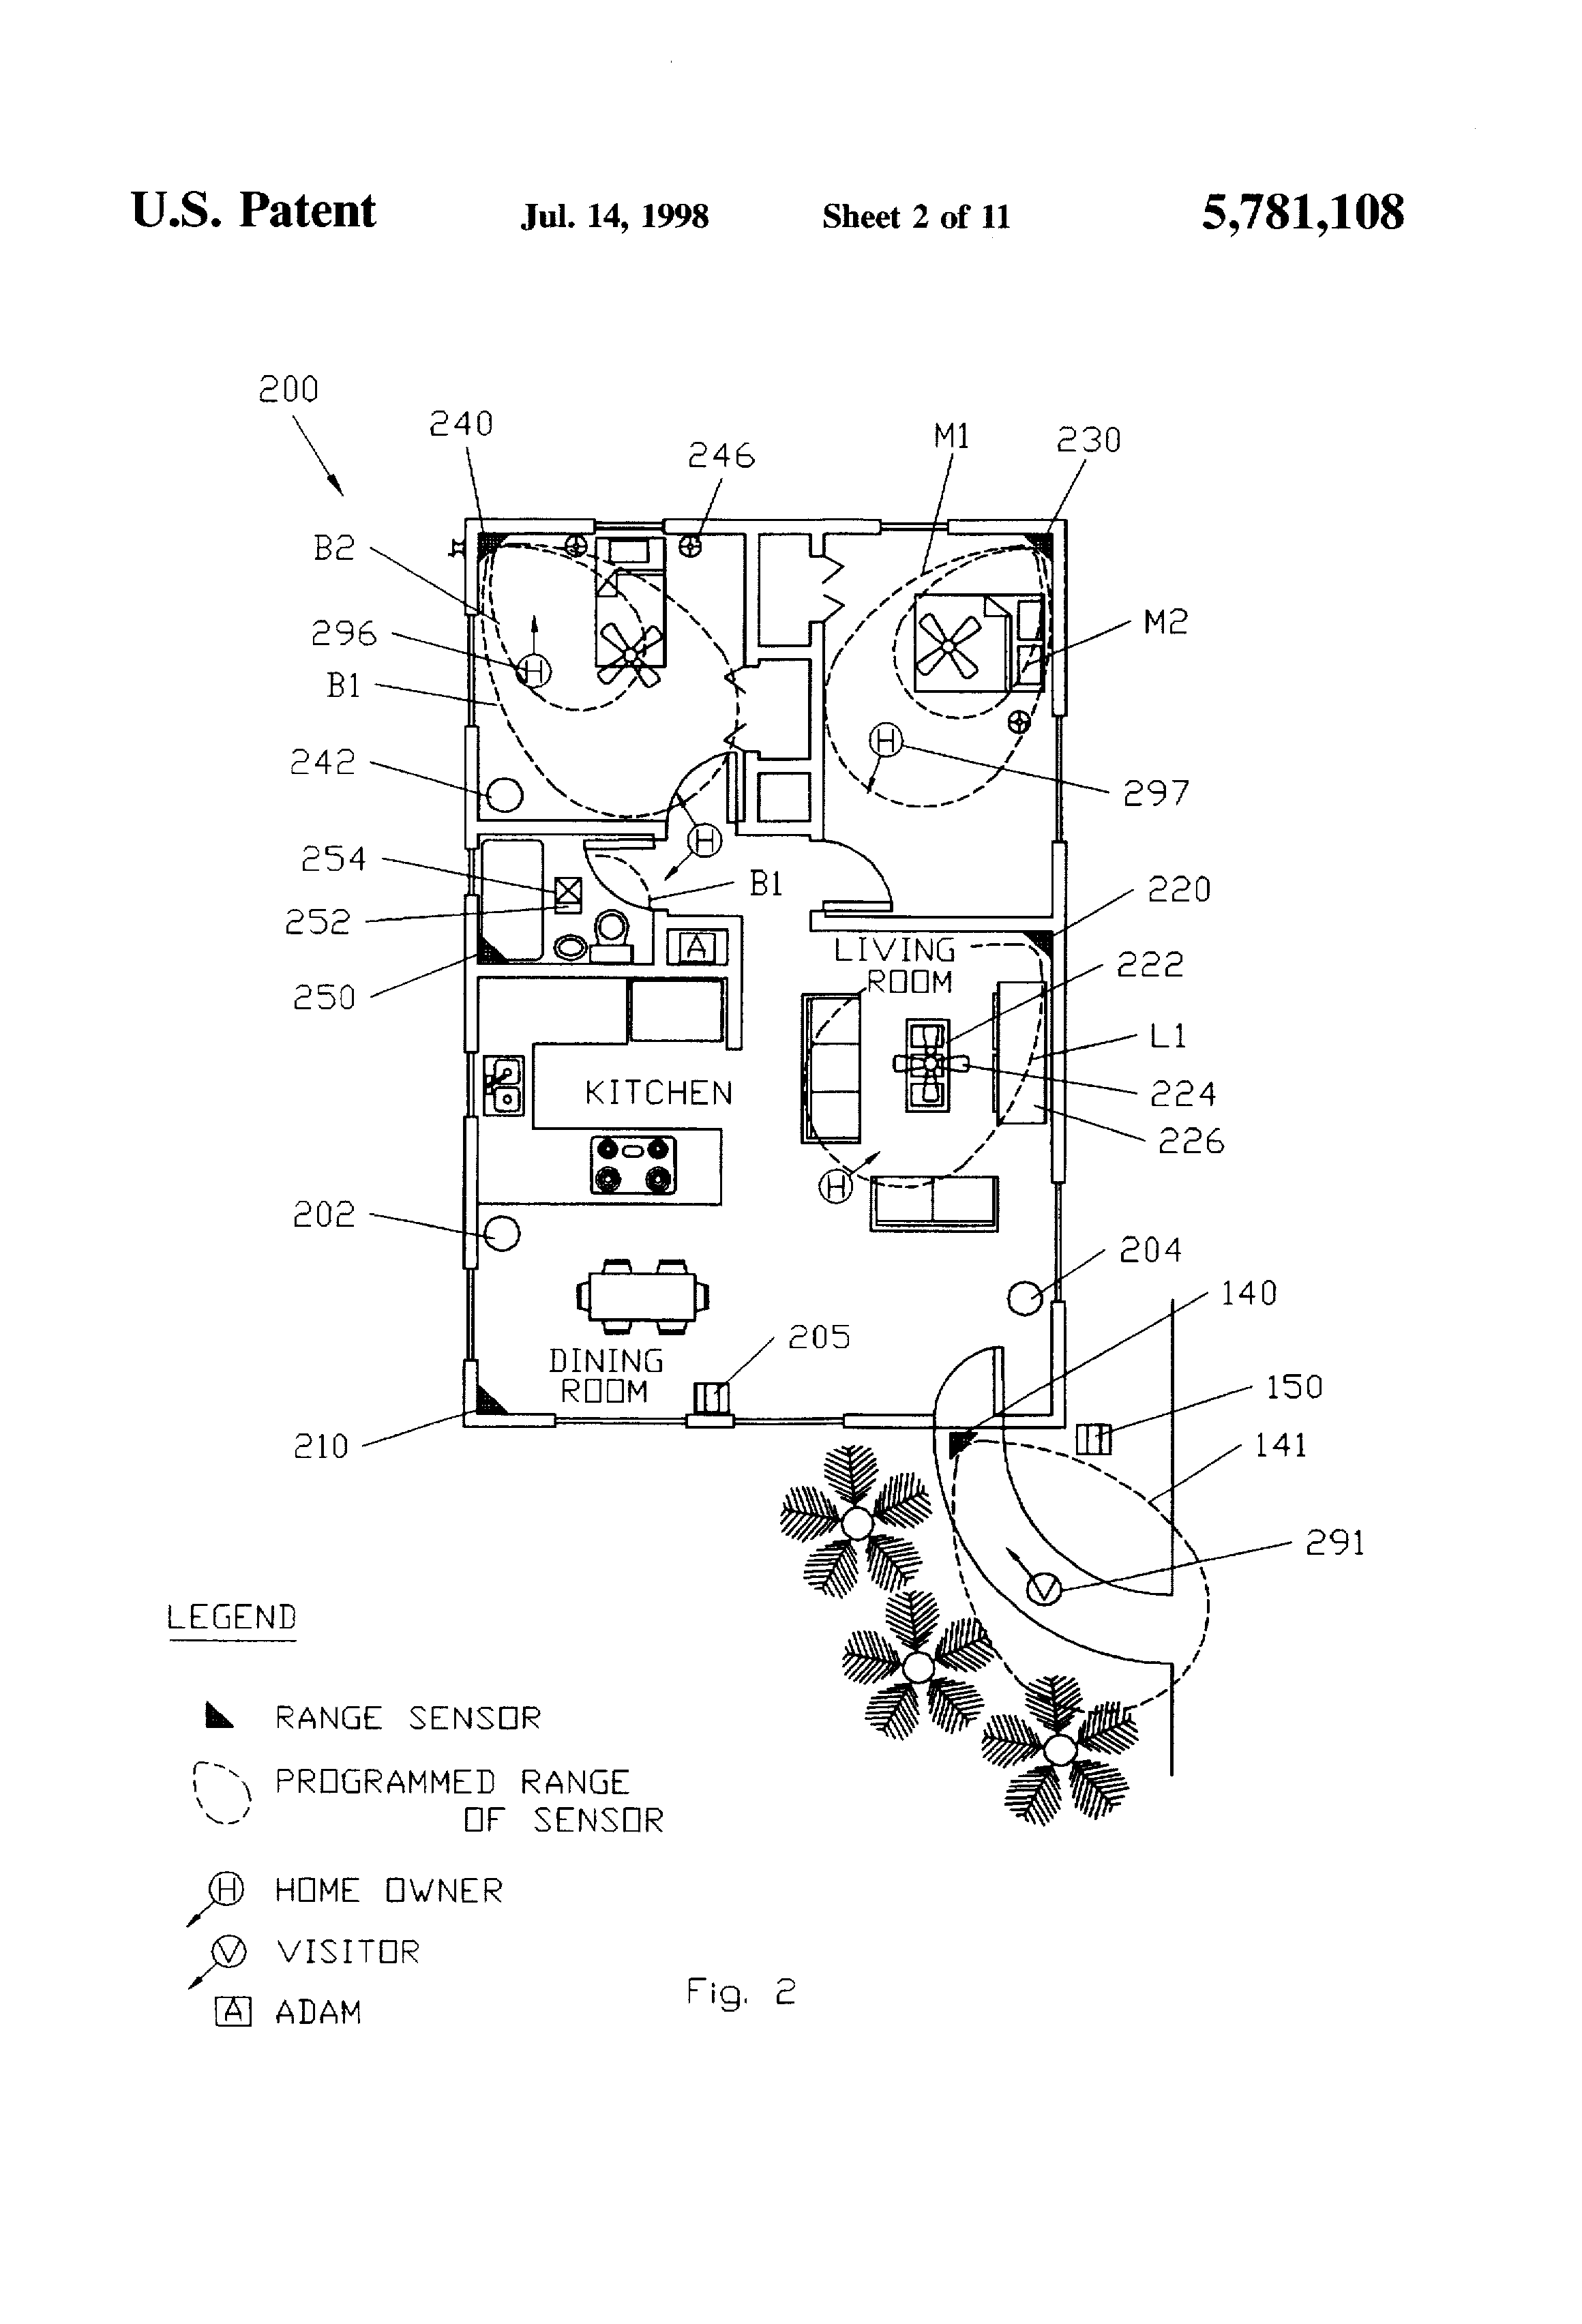 Heller 3 in 1 bathroom heater - Heller 3 In 1 Bathroom Heater Wiring Diagram Patent Drawing Patent Us5781108 Automated Detection And Monitoring Adam